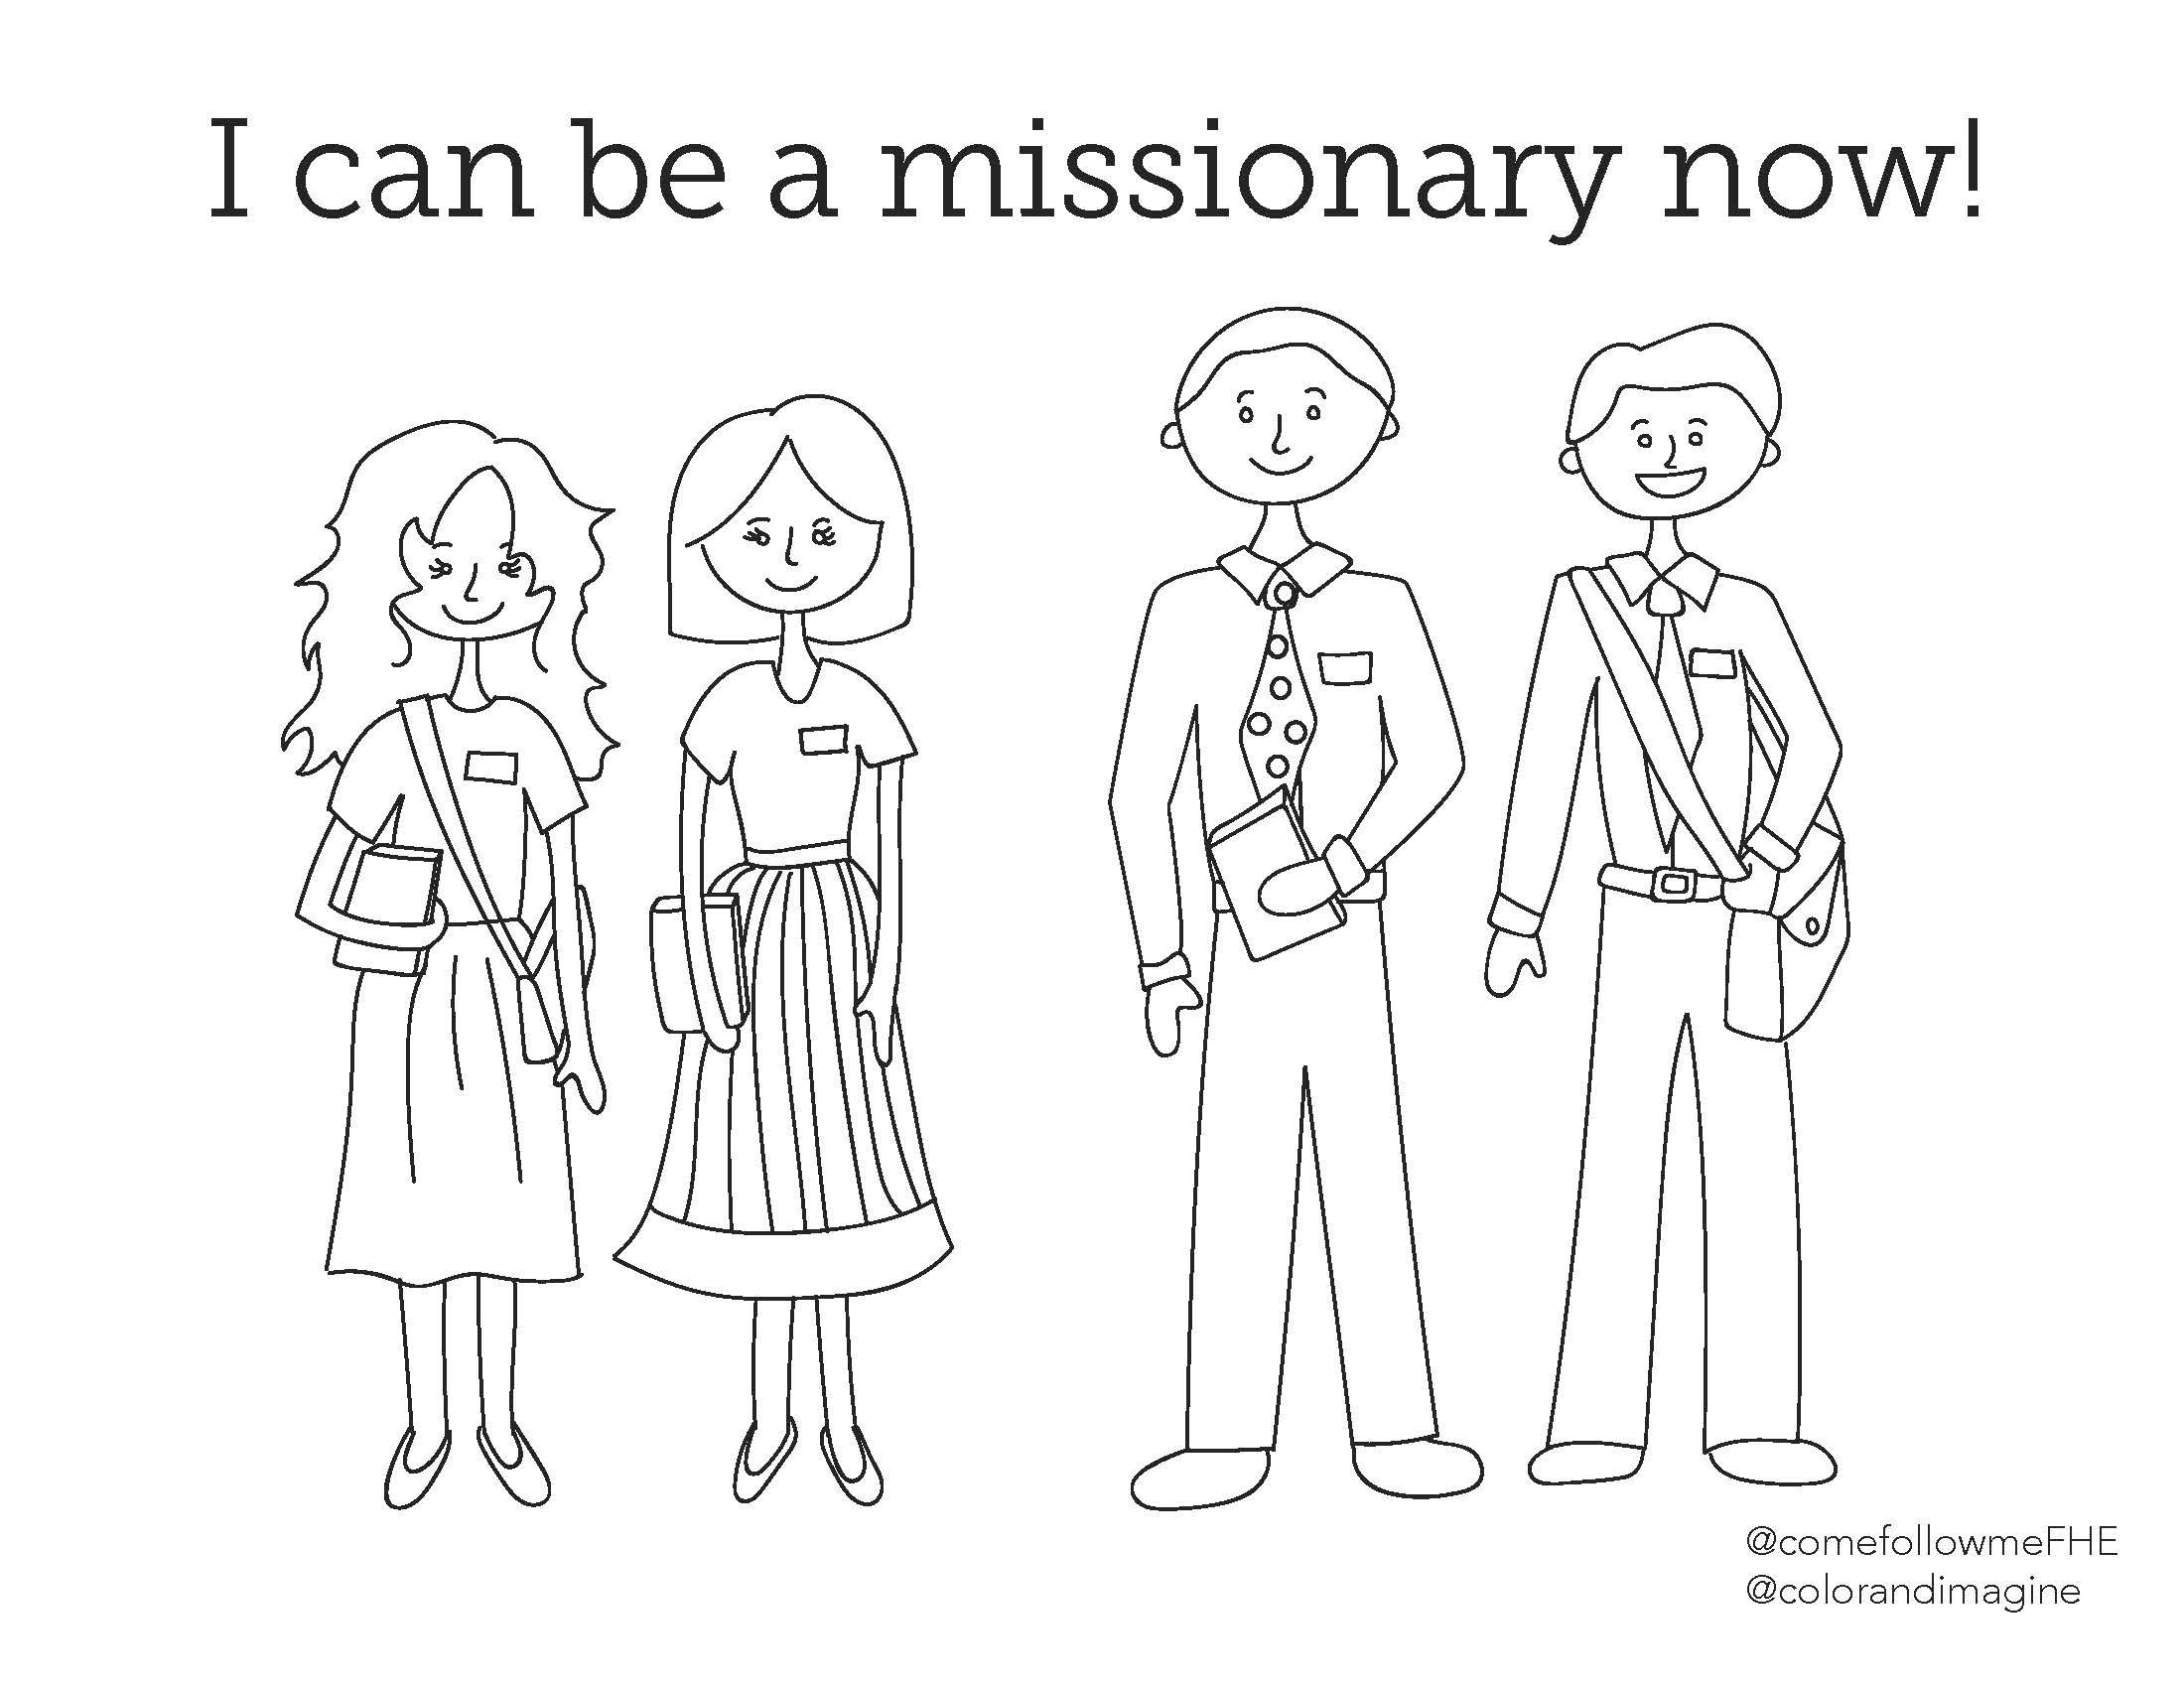 July 22 28 Come Follow Me Lesson For Kids The Lord Had Called Us For To Preach The Gospel Come Follow Me Fhe Lds Fhe Lessons Lds Coloring Pages Coloring Pages